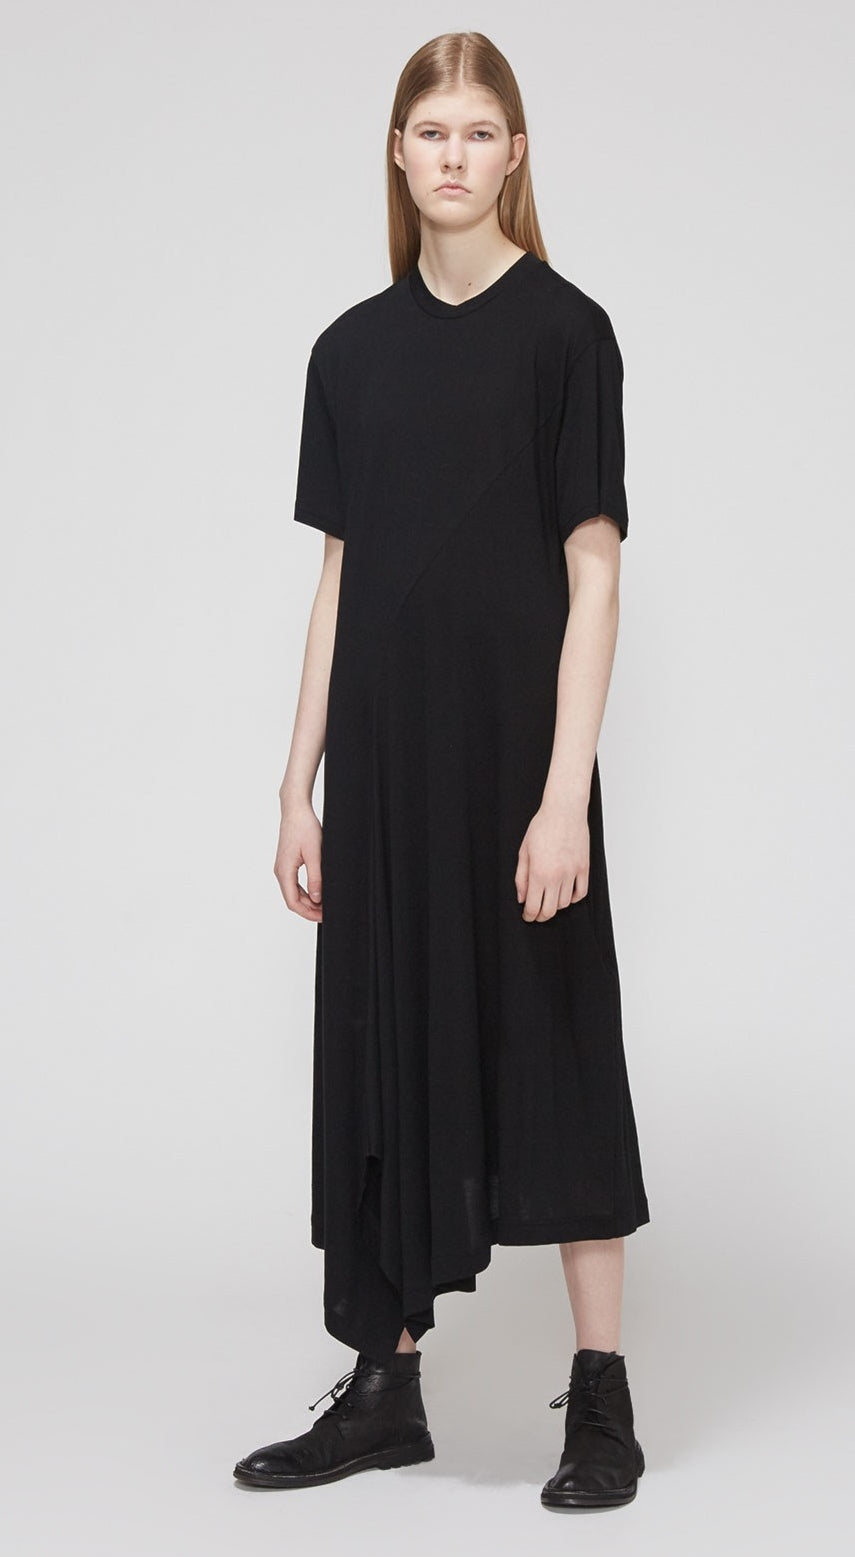 YHJI YAMAMTO Asymmetrical Hem Dress / Plus Size